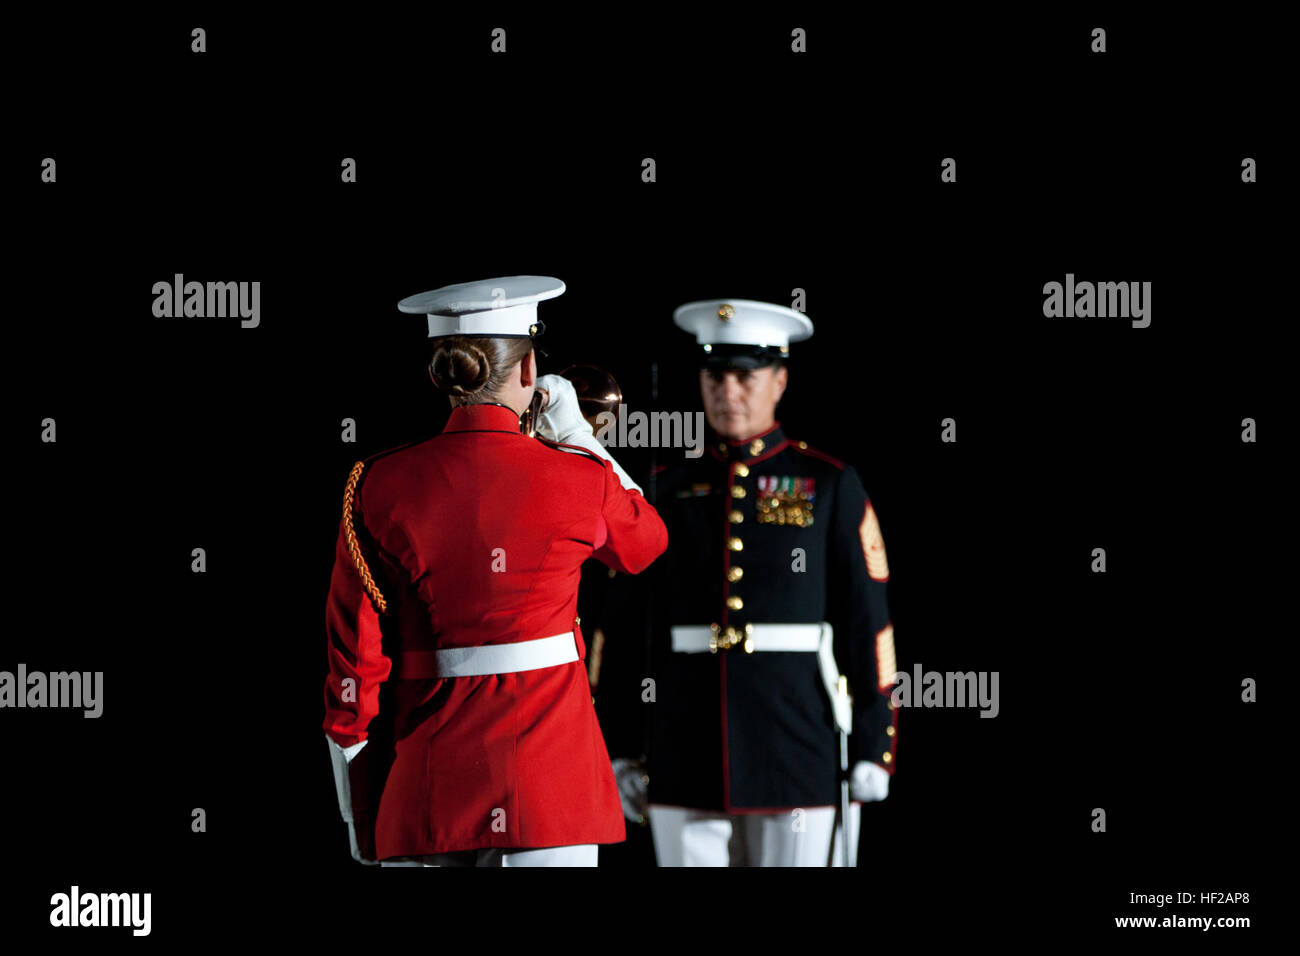 The Sergeant Major of Marine Barracks Washington, Sgt. Maj. Angela Maness, rear, stands at center walk with a ceremonial Stock Photo